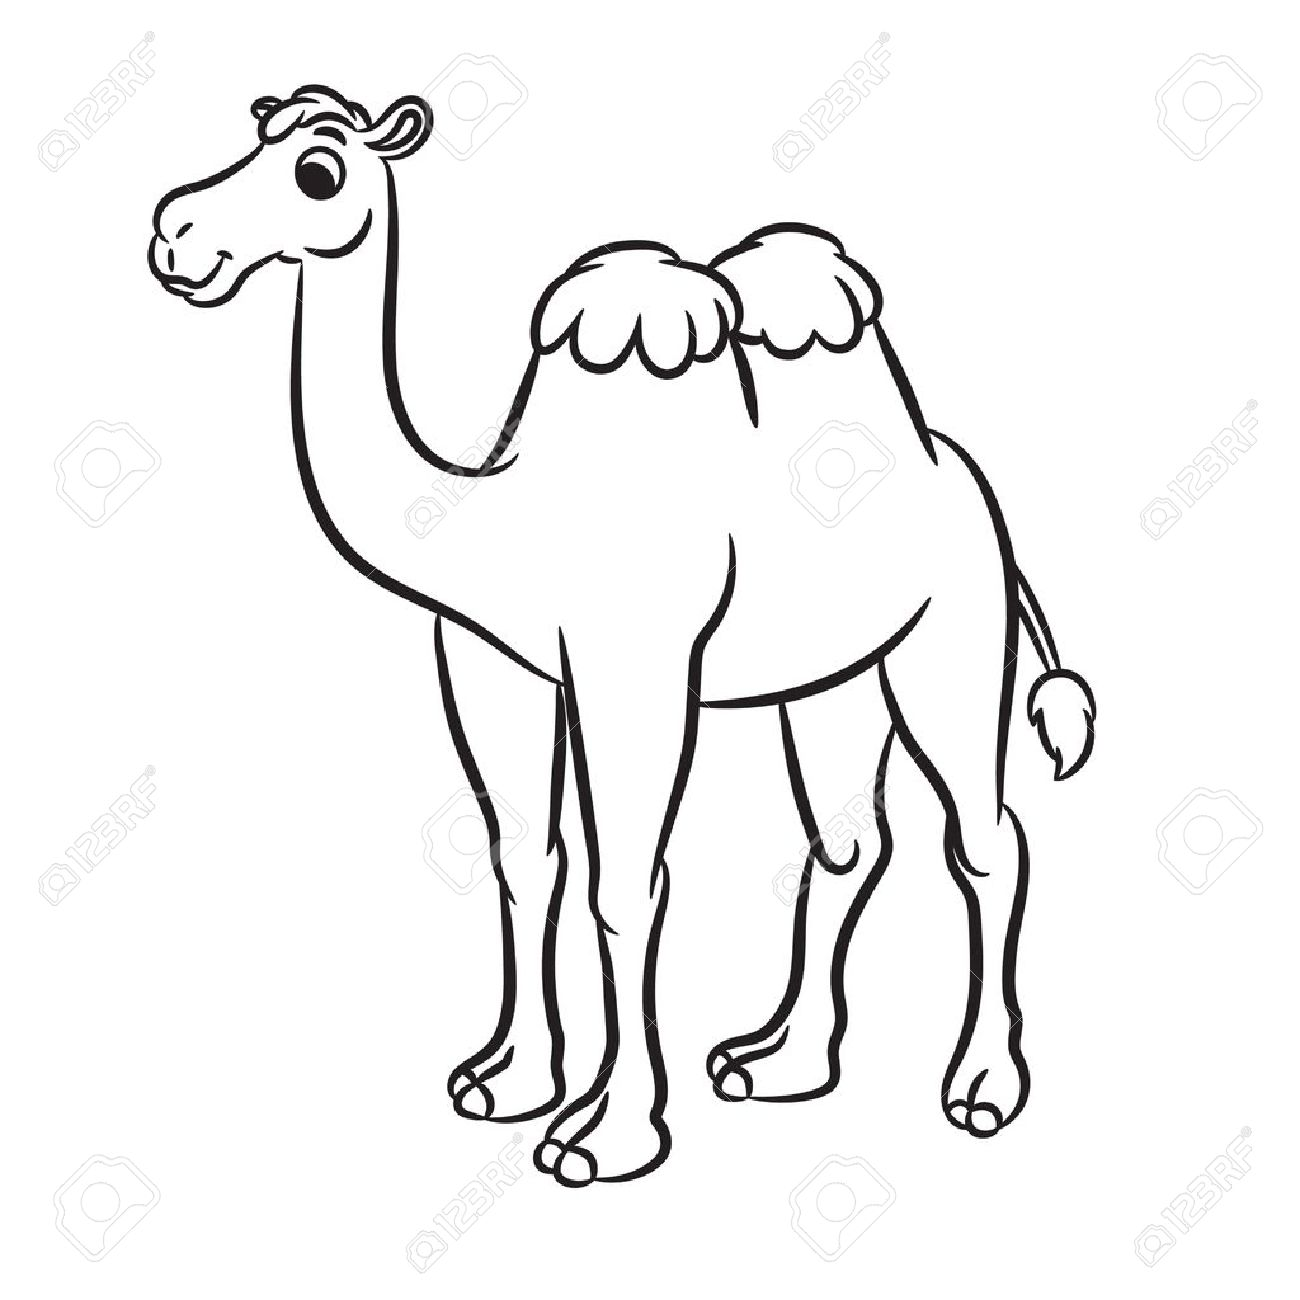 Camel clipart black and white, Picture #147459 camel clipart.